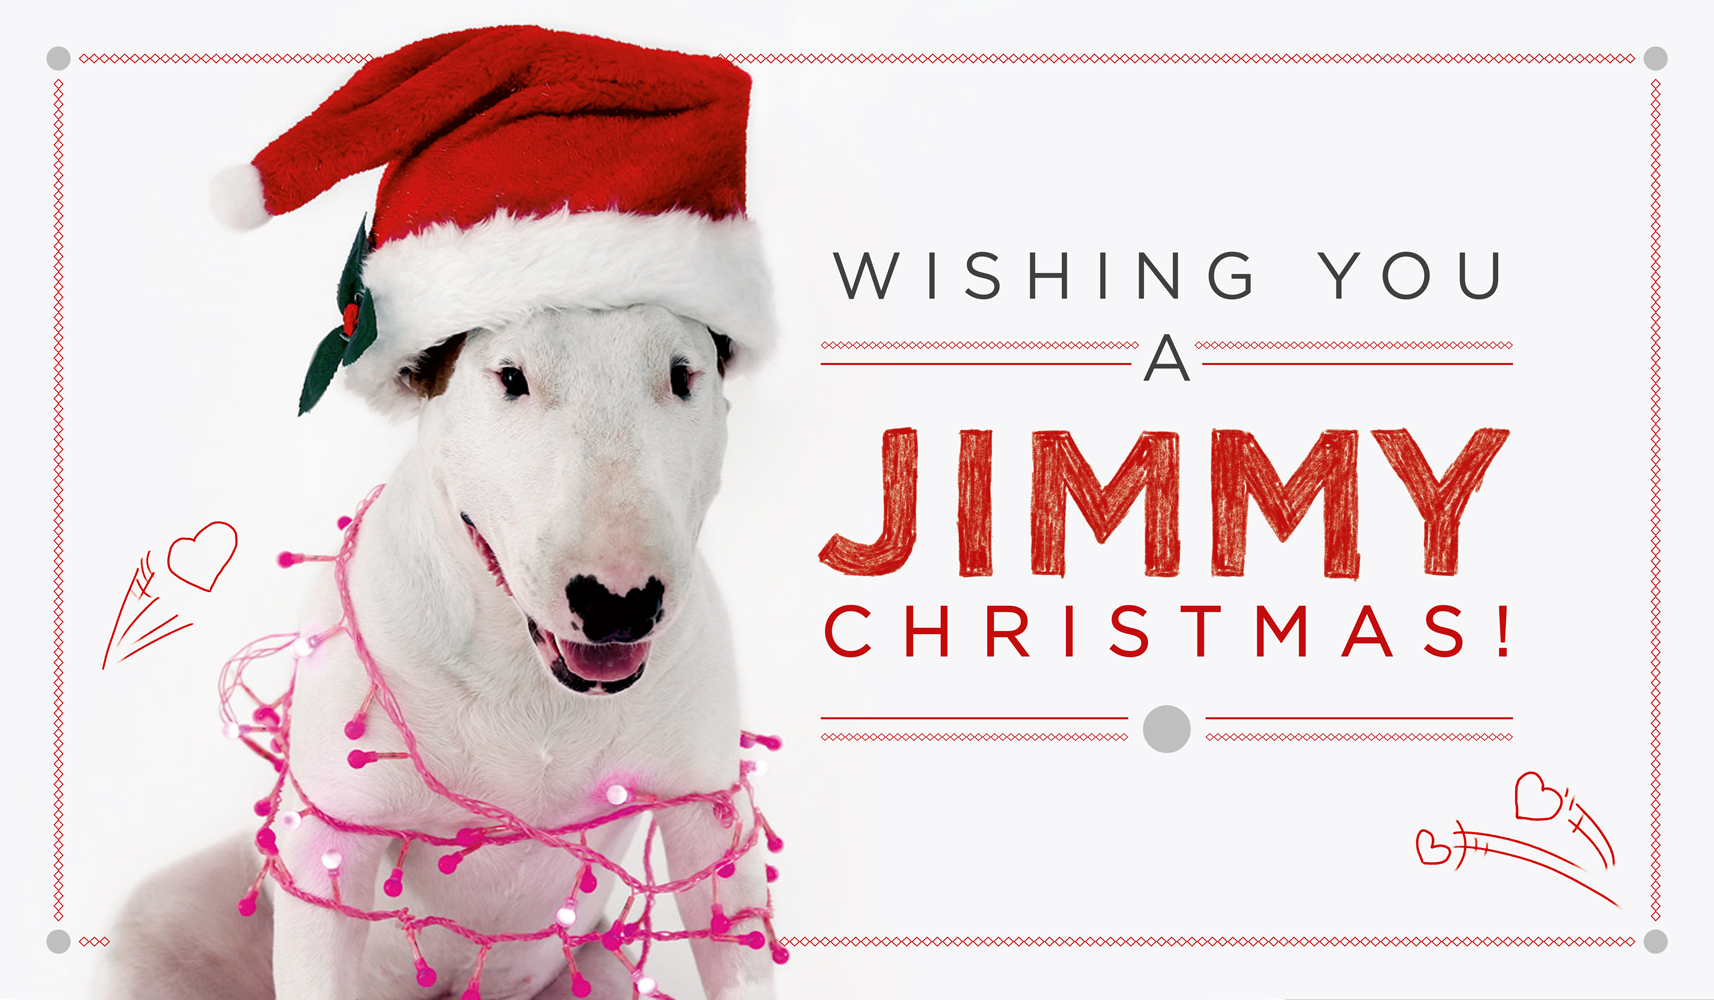 Jimmy the Dog Christmas Image